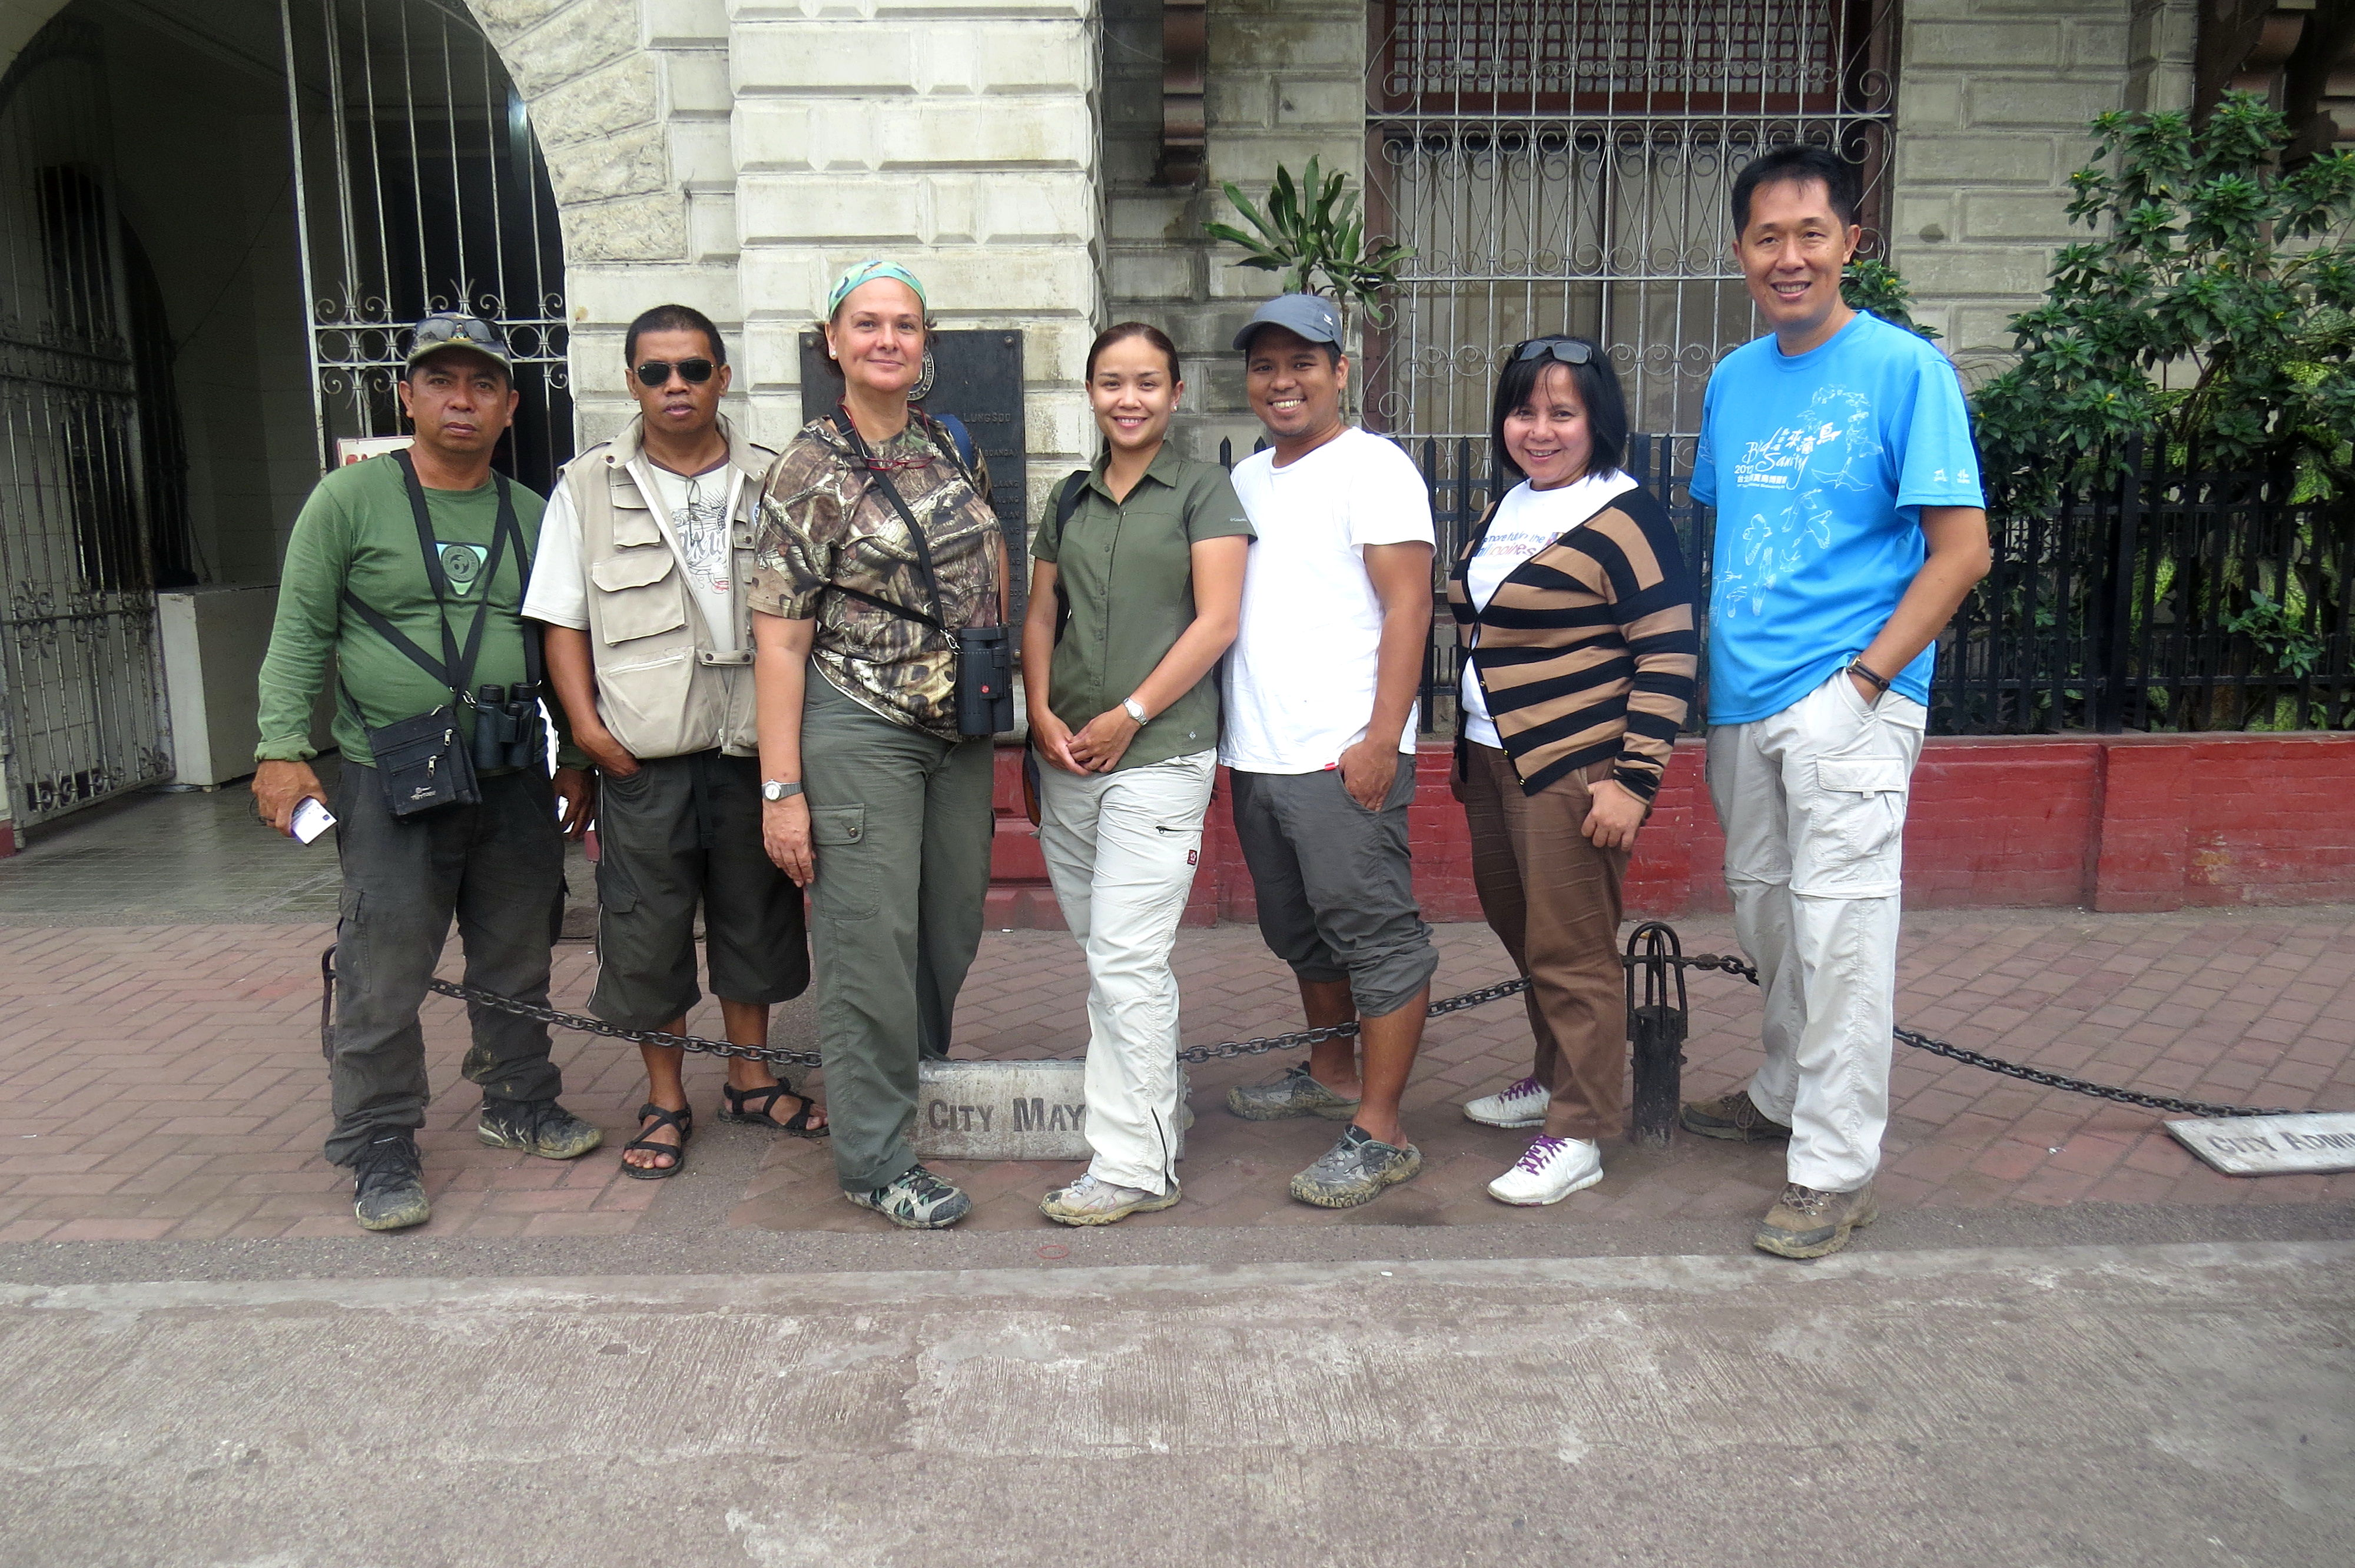 Posing in front of the Zamboanga City Hall. Frome L-R: Joel Baysa, Mike, Gina Mapua, Maia Tanedo, June Bugante, Mike Lu. Photo from Maia Tanedo.